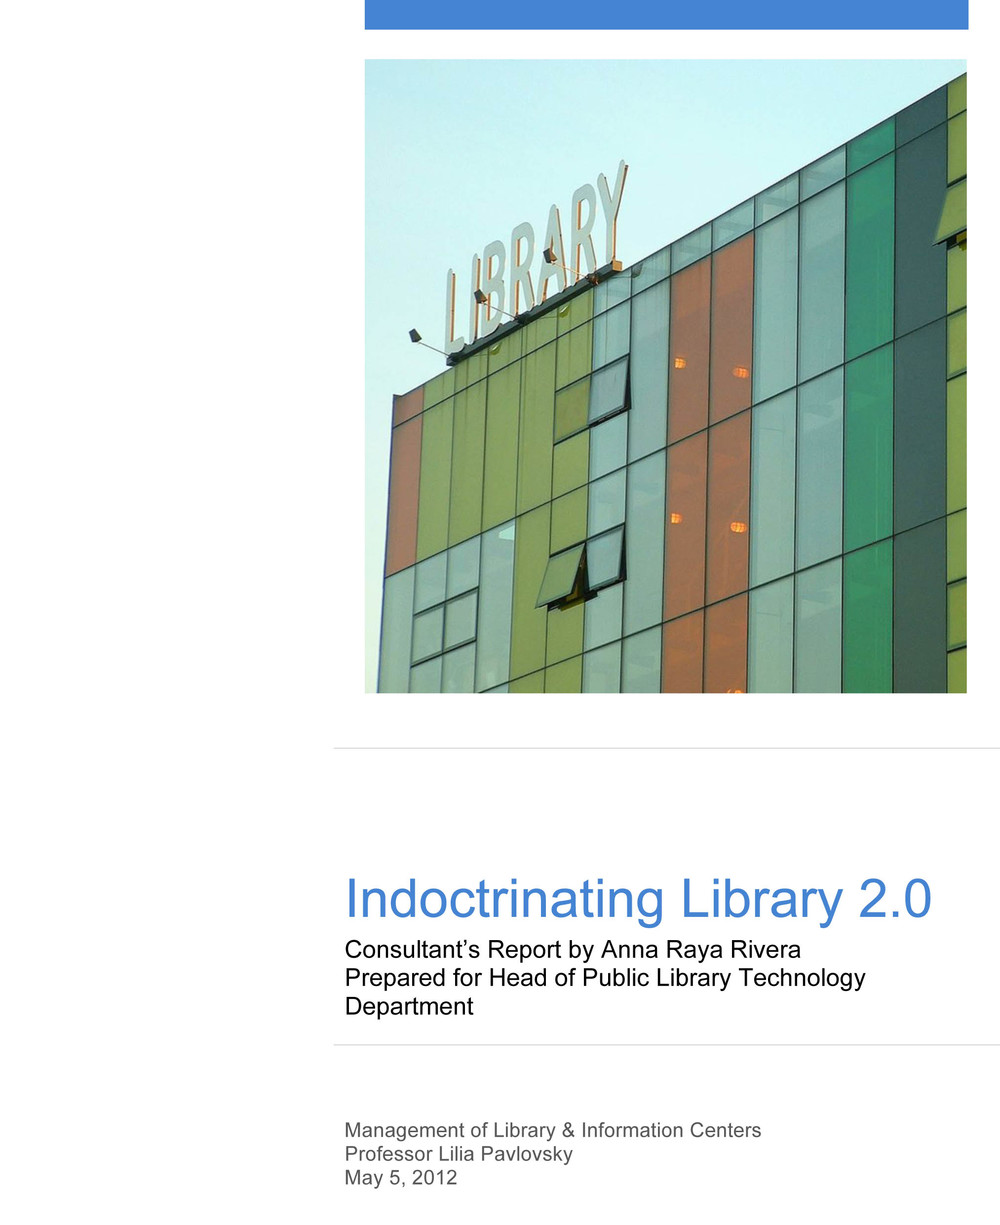 Library management consultant's report